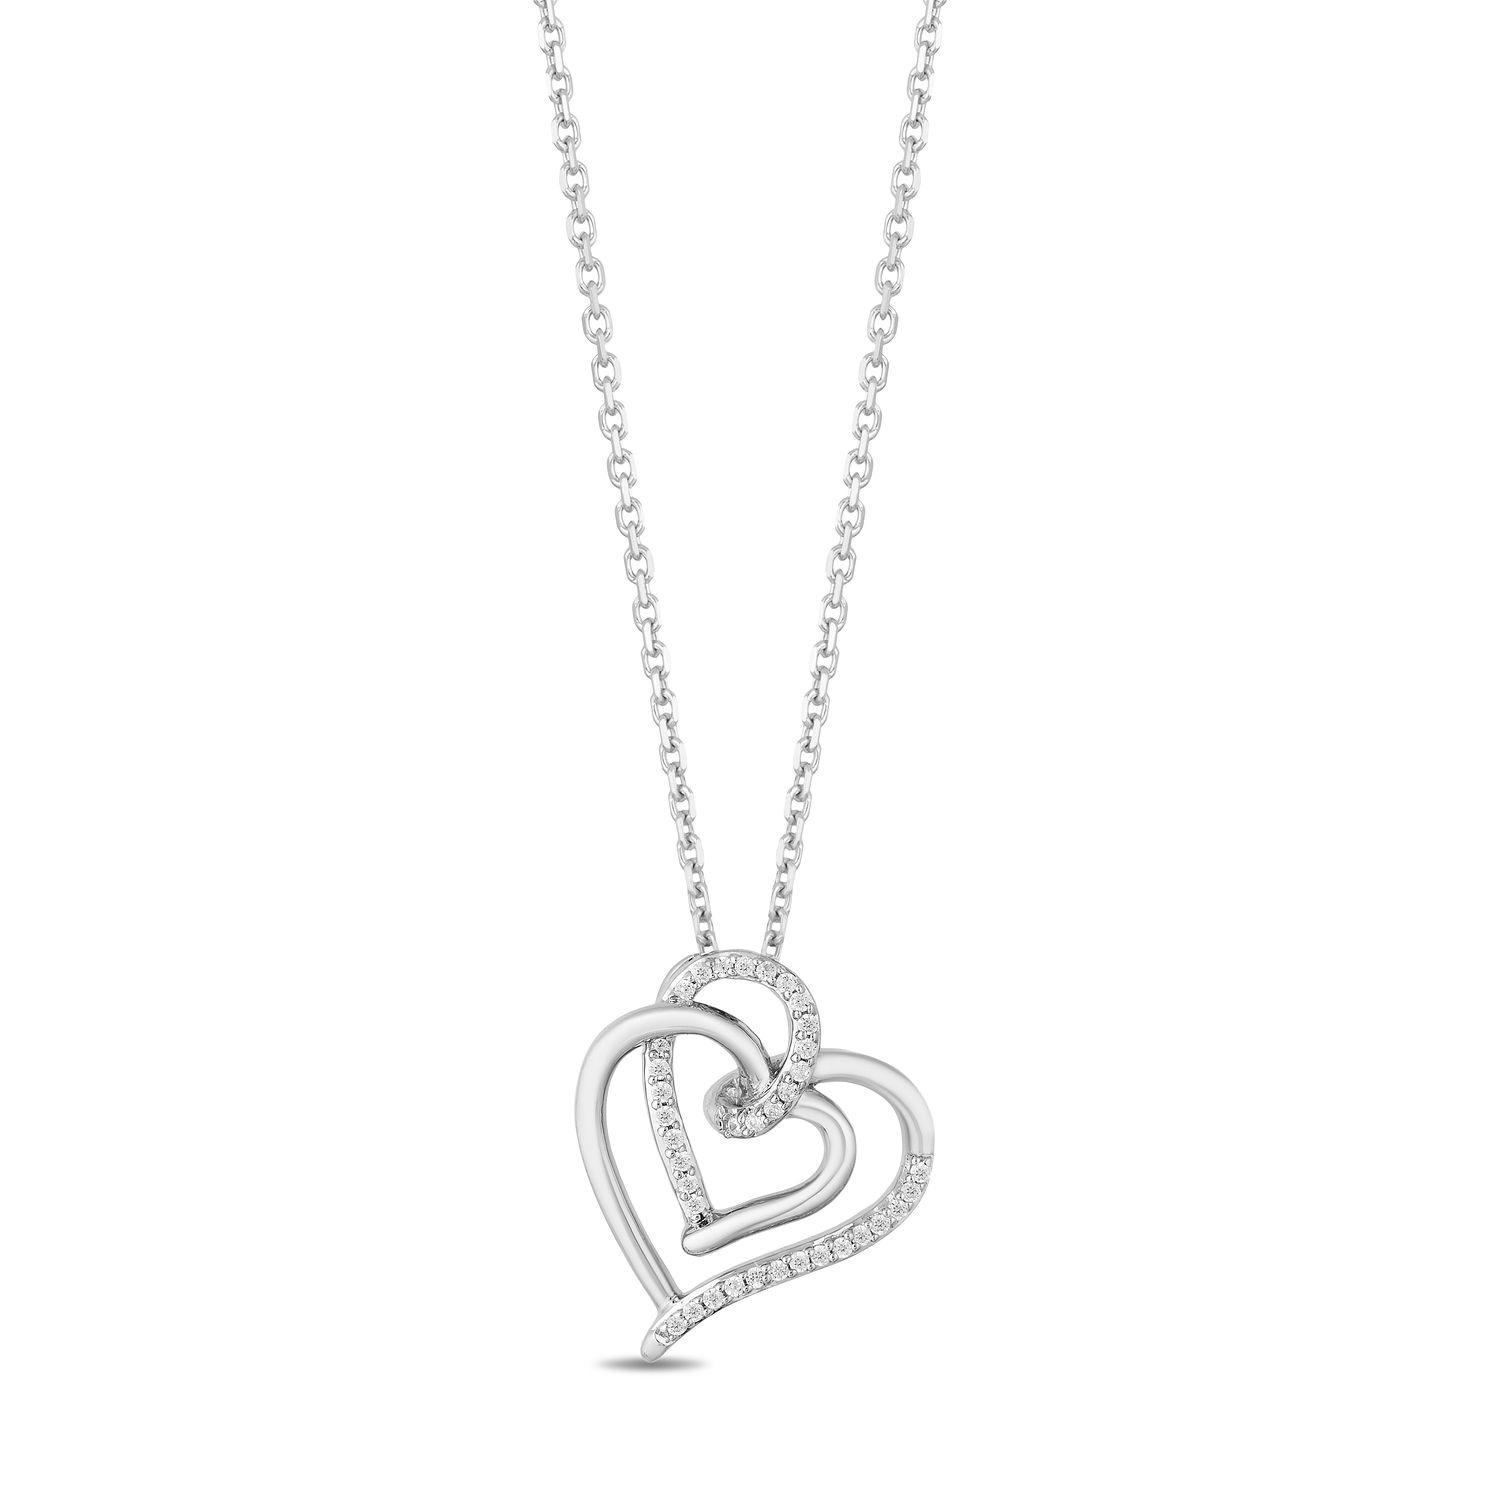 Hallmark Silver Diamond Intertwined Hearts Pendant - Product number 3886522